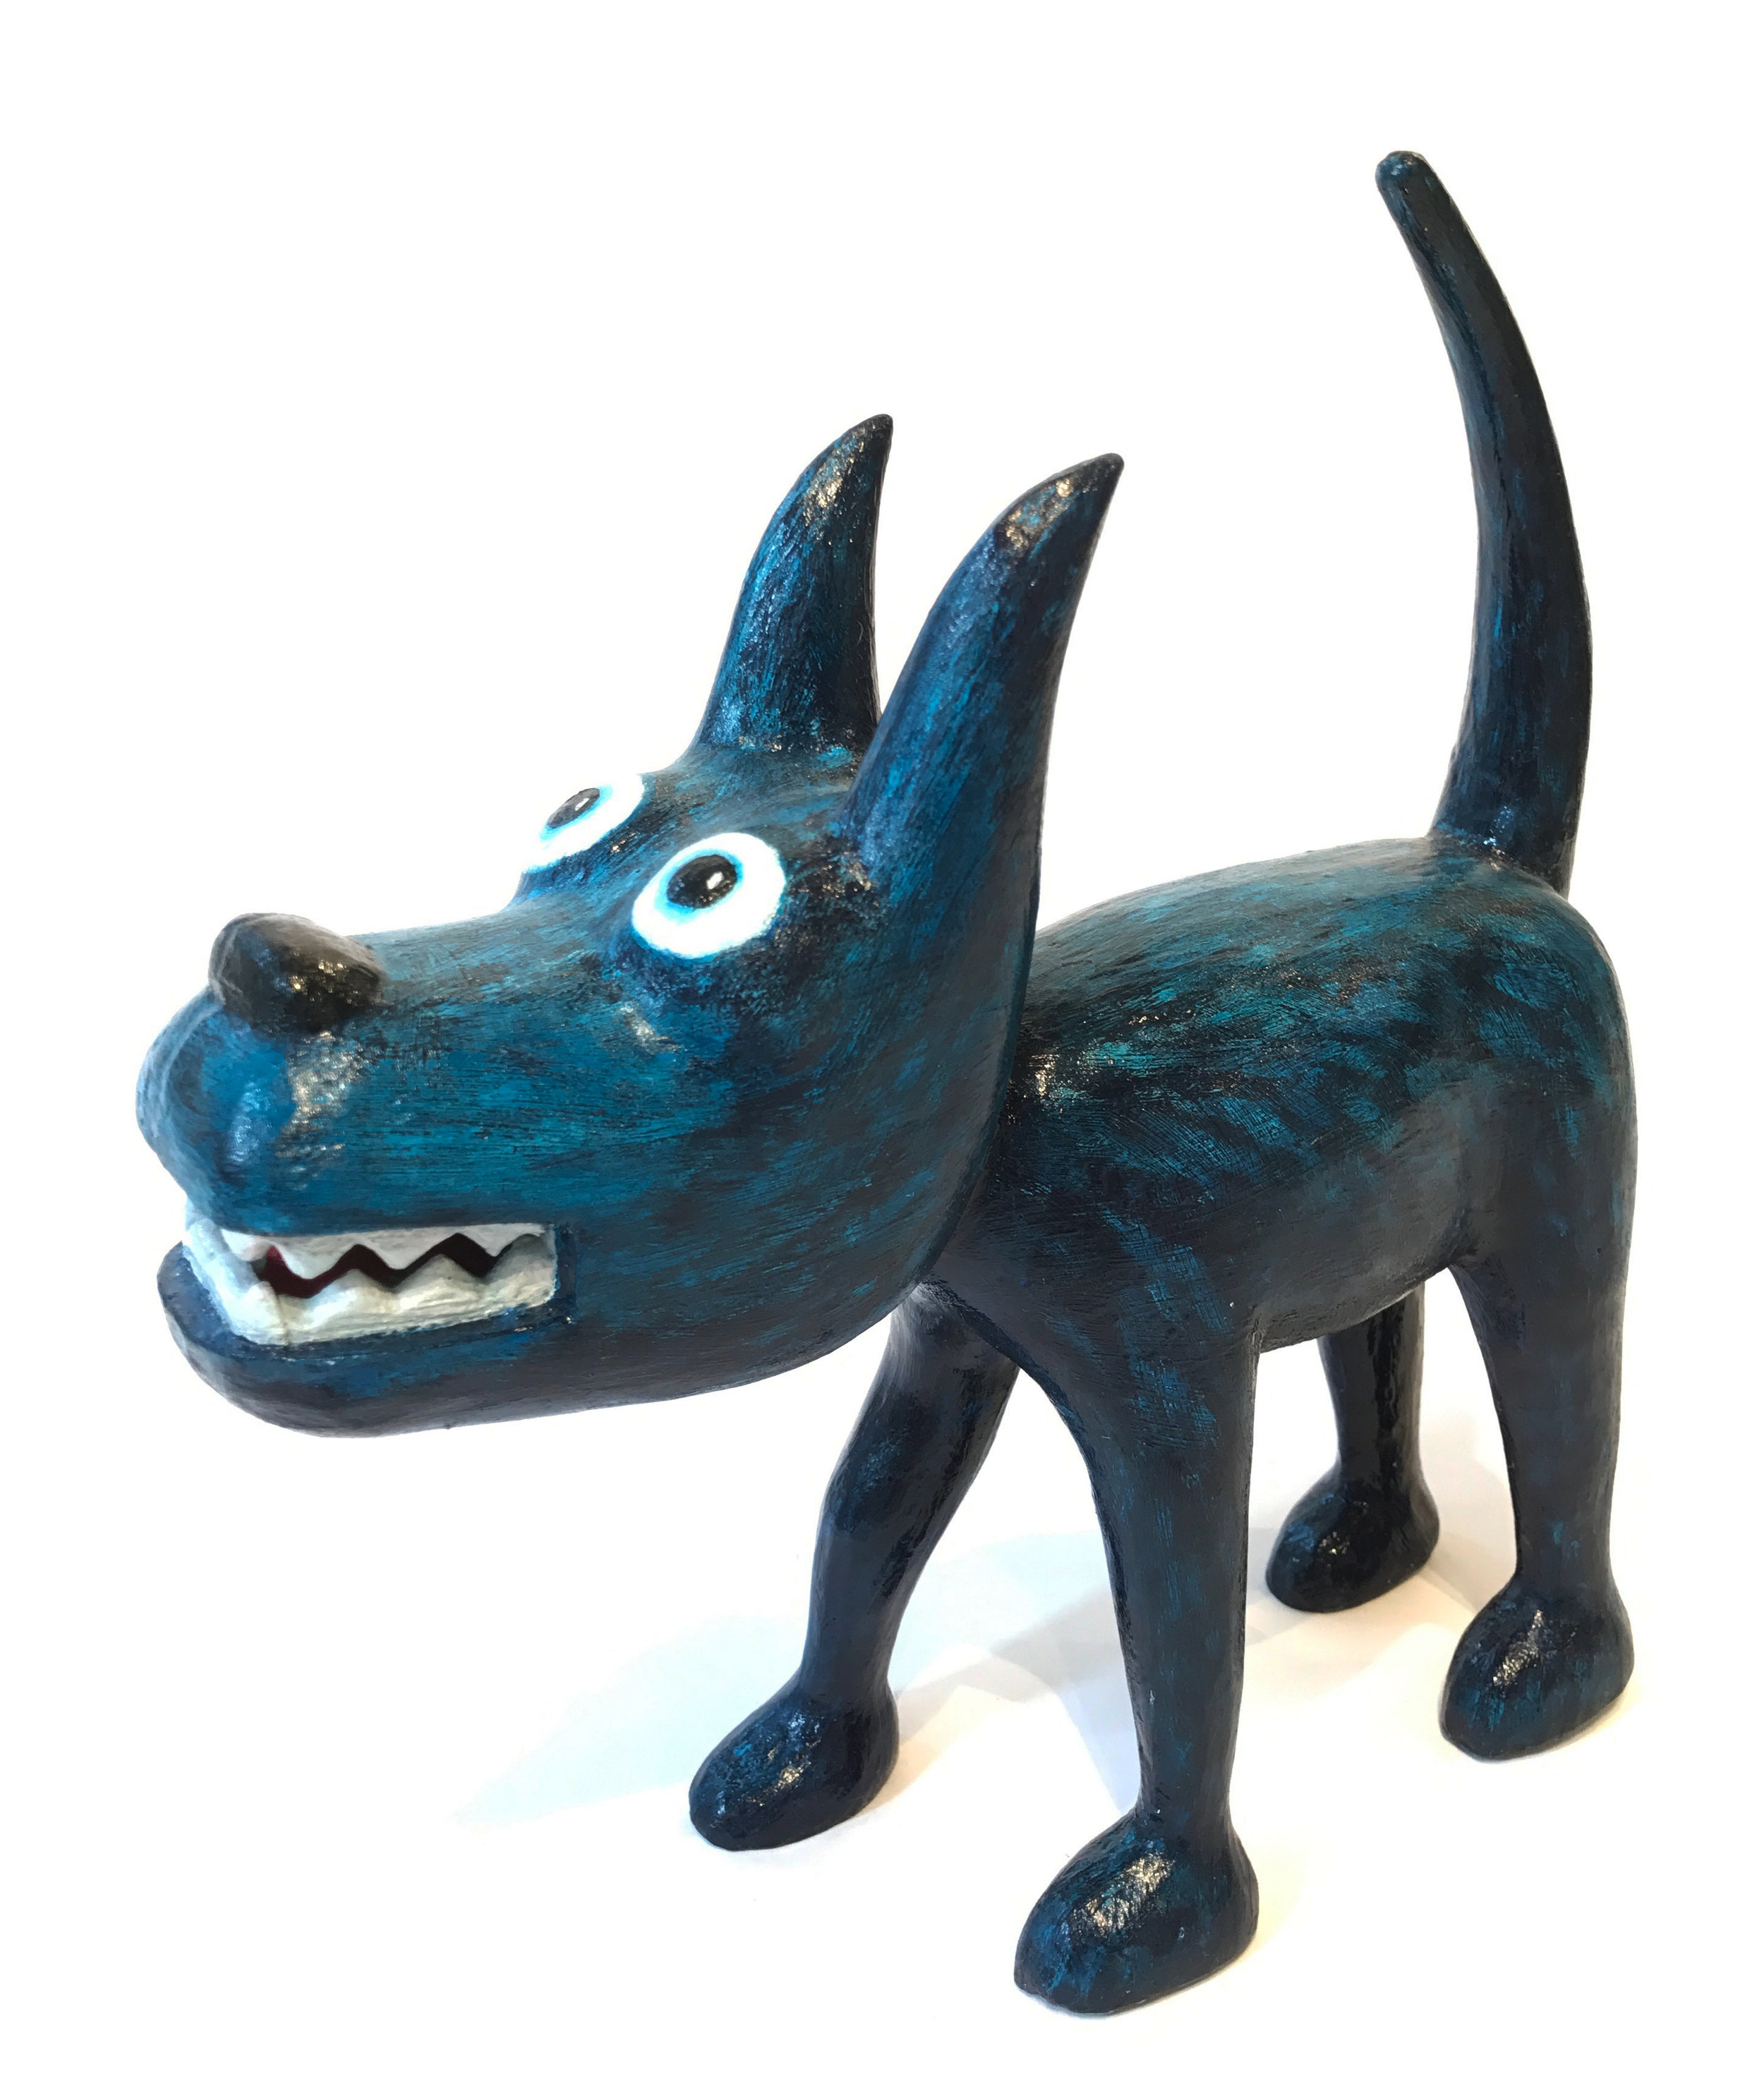 """Dog 4"" Sculpture, unique item 27 x 24 x 9 cm 2010"